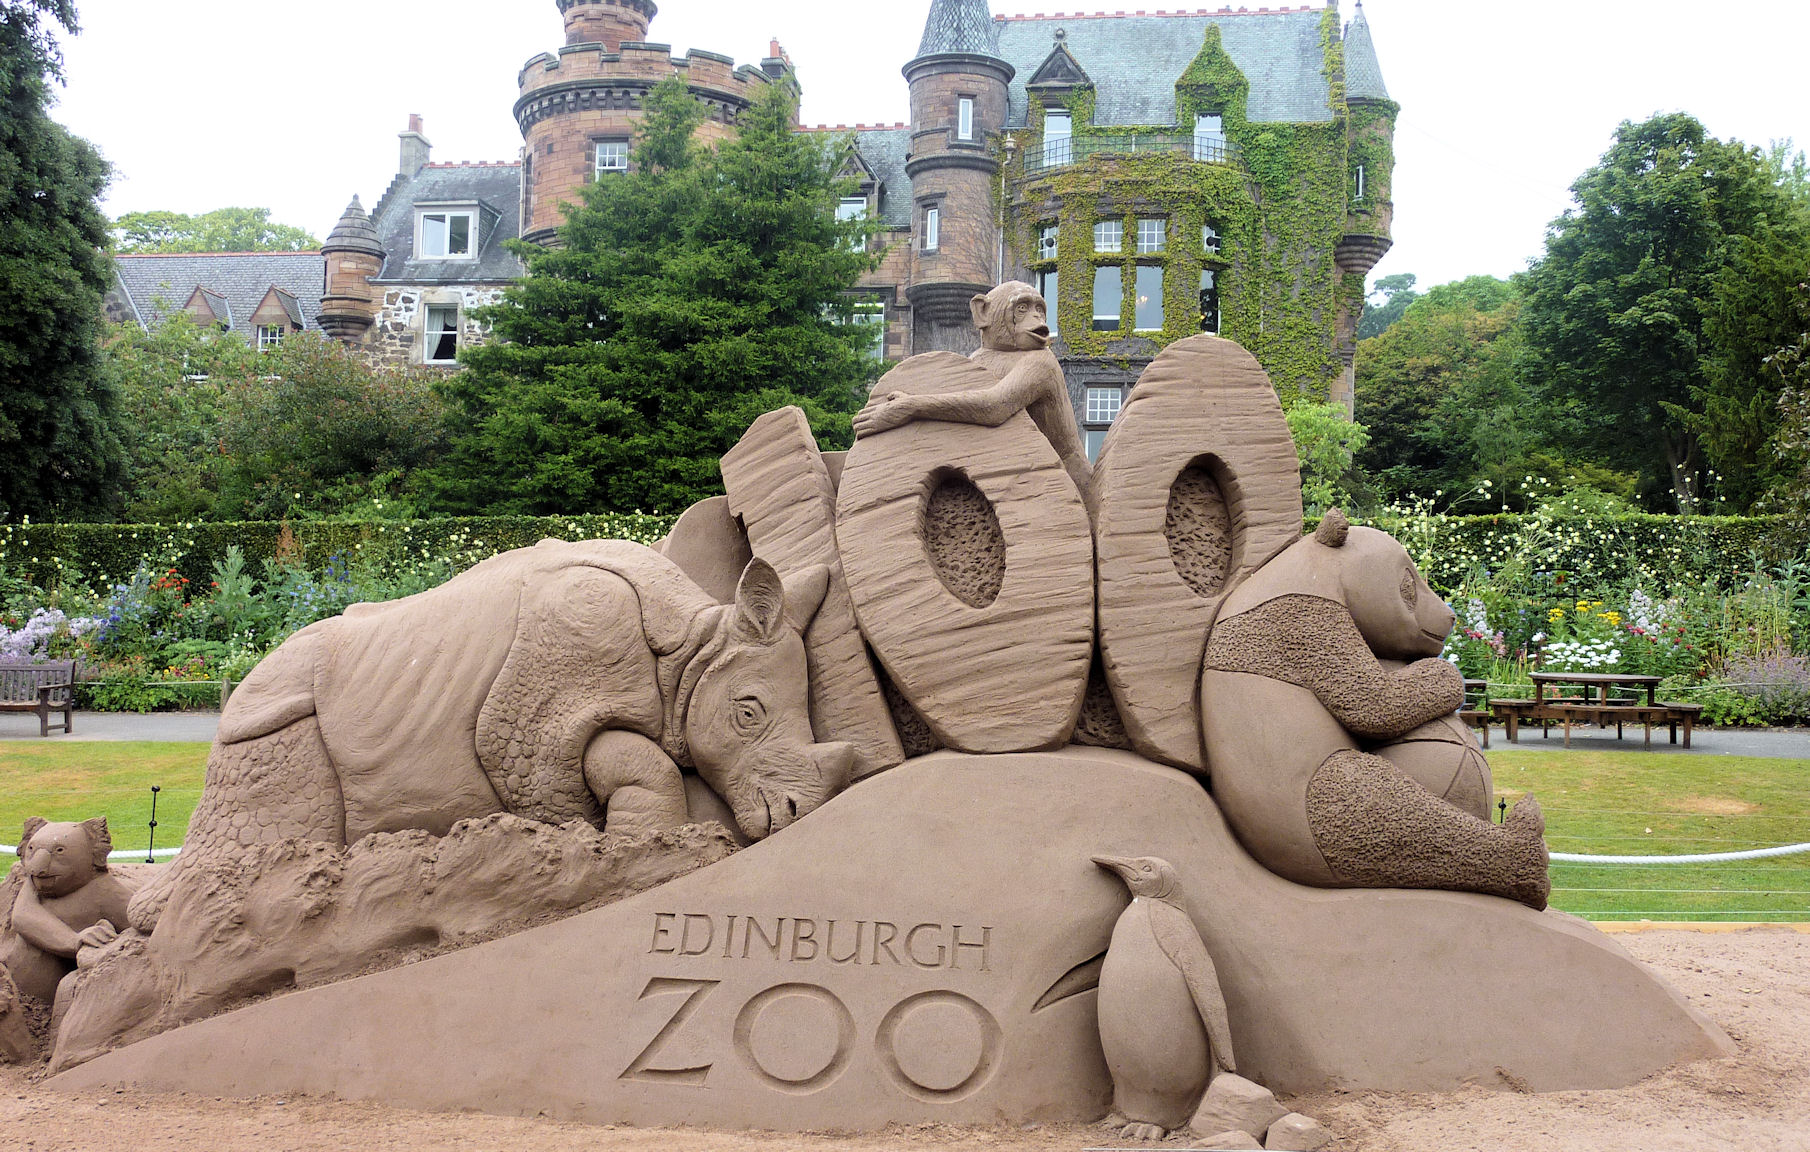 Edinburgh Zoo Edinburgh, Edinburgh Zoo | VISIT ALL OVER THE WORLD